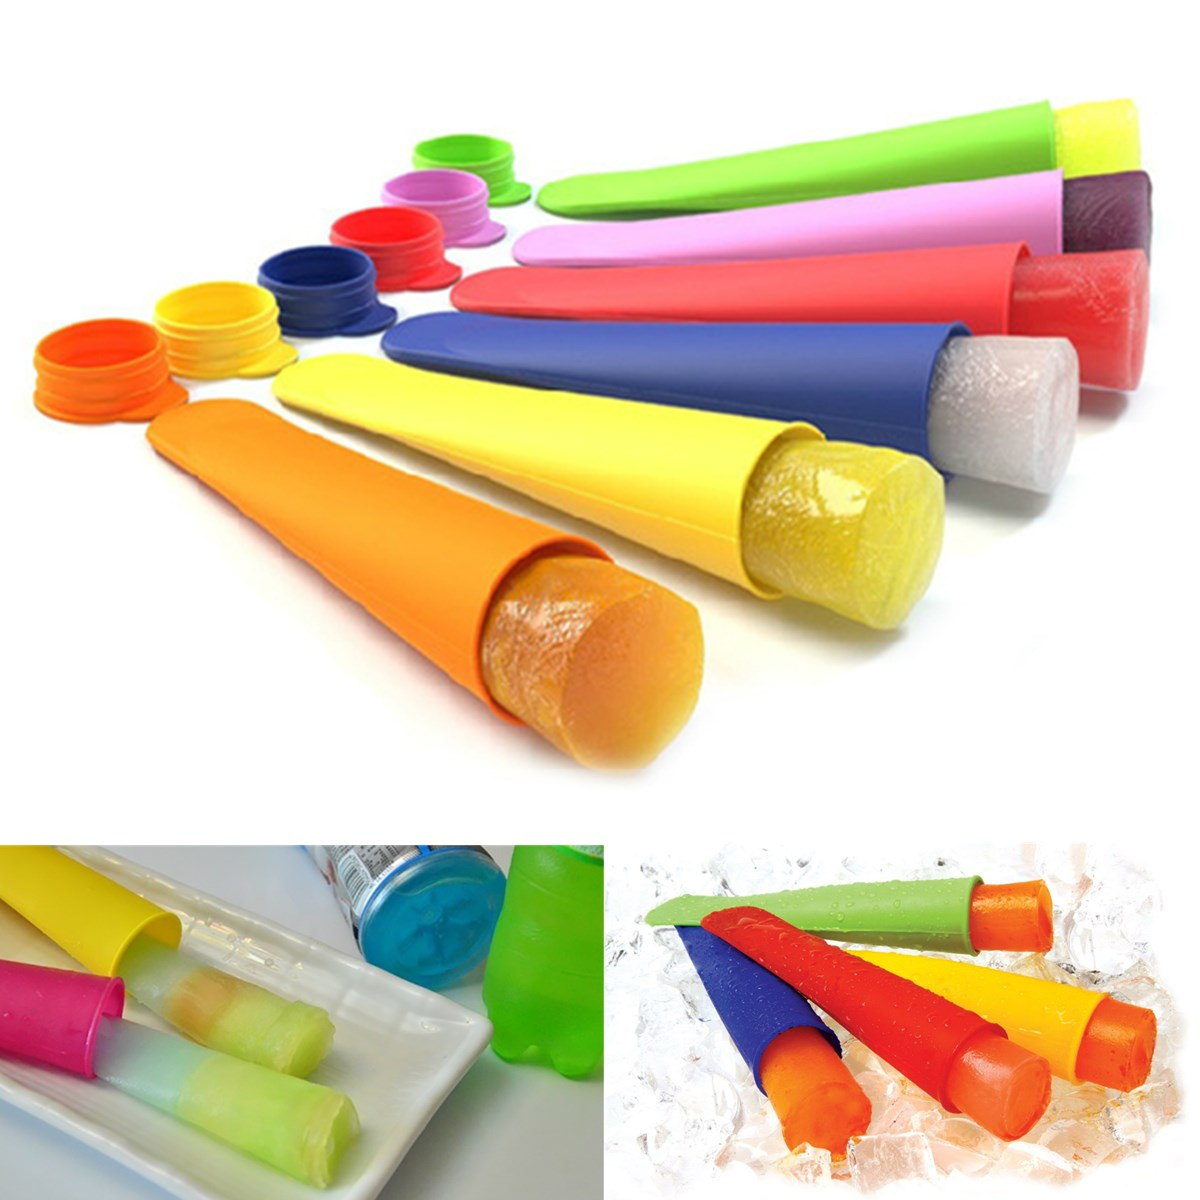 DIY Silicone Ice Pole Makers Frozen Popsicle Lolly Pop Mould Push Up Ice Cream Mold Assorted Colors